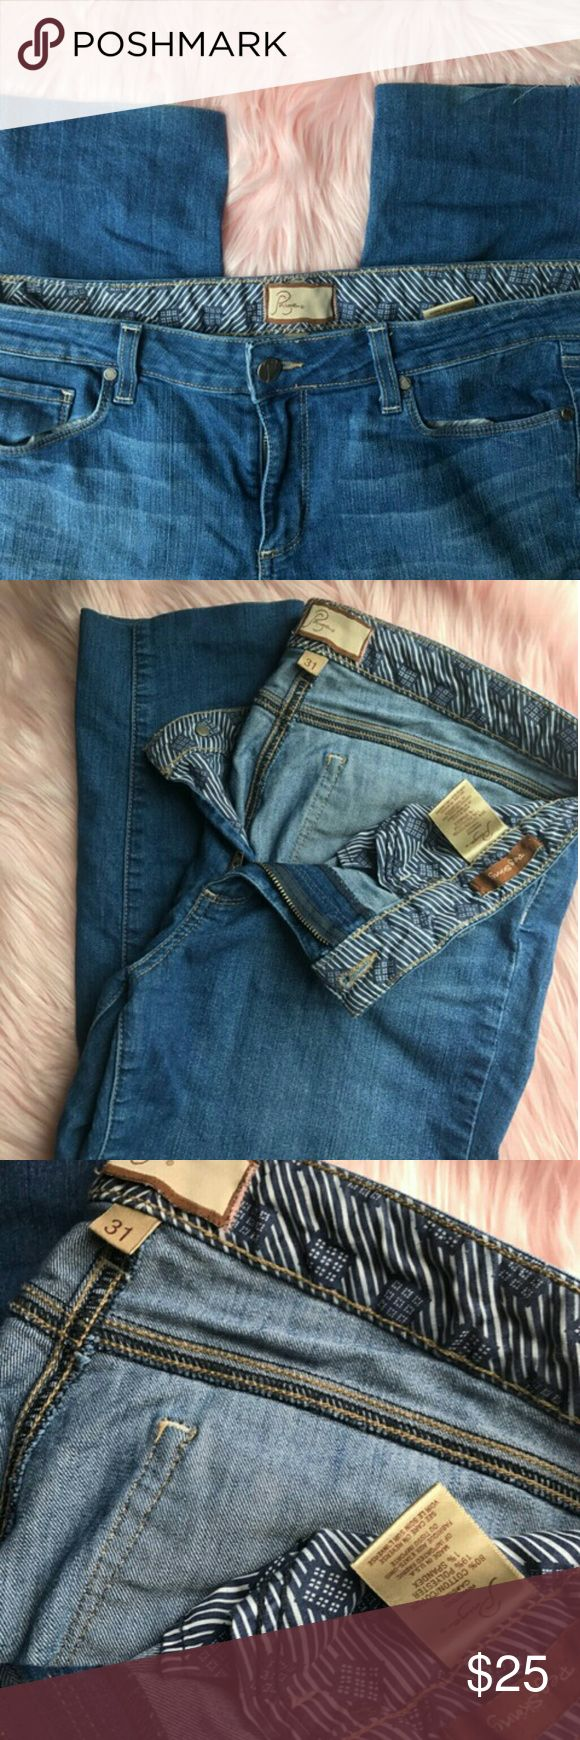 Paige Premium Denim size 31 Peg Skinny If you know Paige, you know these are the comfiest!  These are the Peg Skinny style. See photos: These have been DIY hemmed. Paige Jeans Jeans Skinny